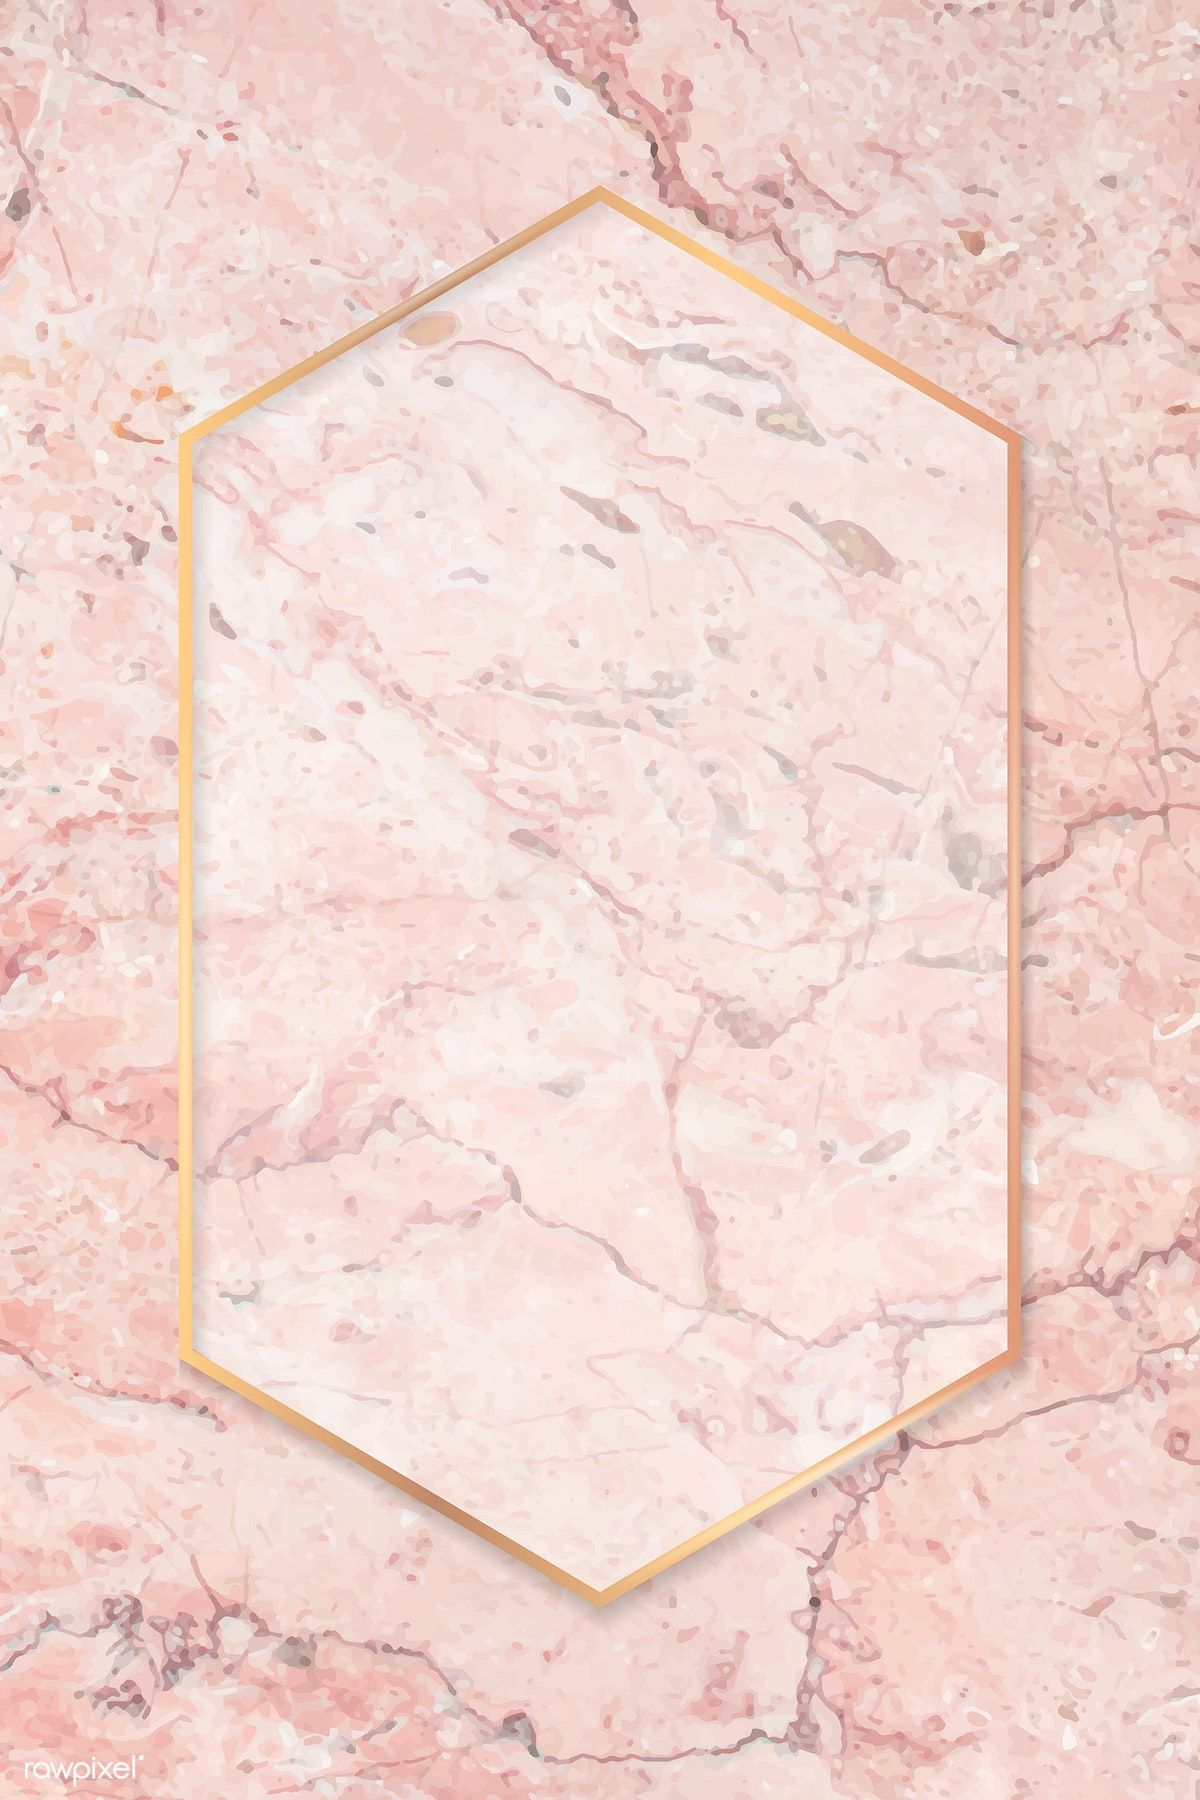 Download Premium Vector Of Hexagon Gold Frame On Pink Marble Background In 2020 Pink Marble Background Marble Background Pink Marble